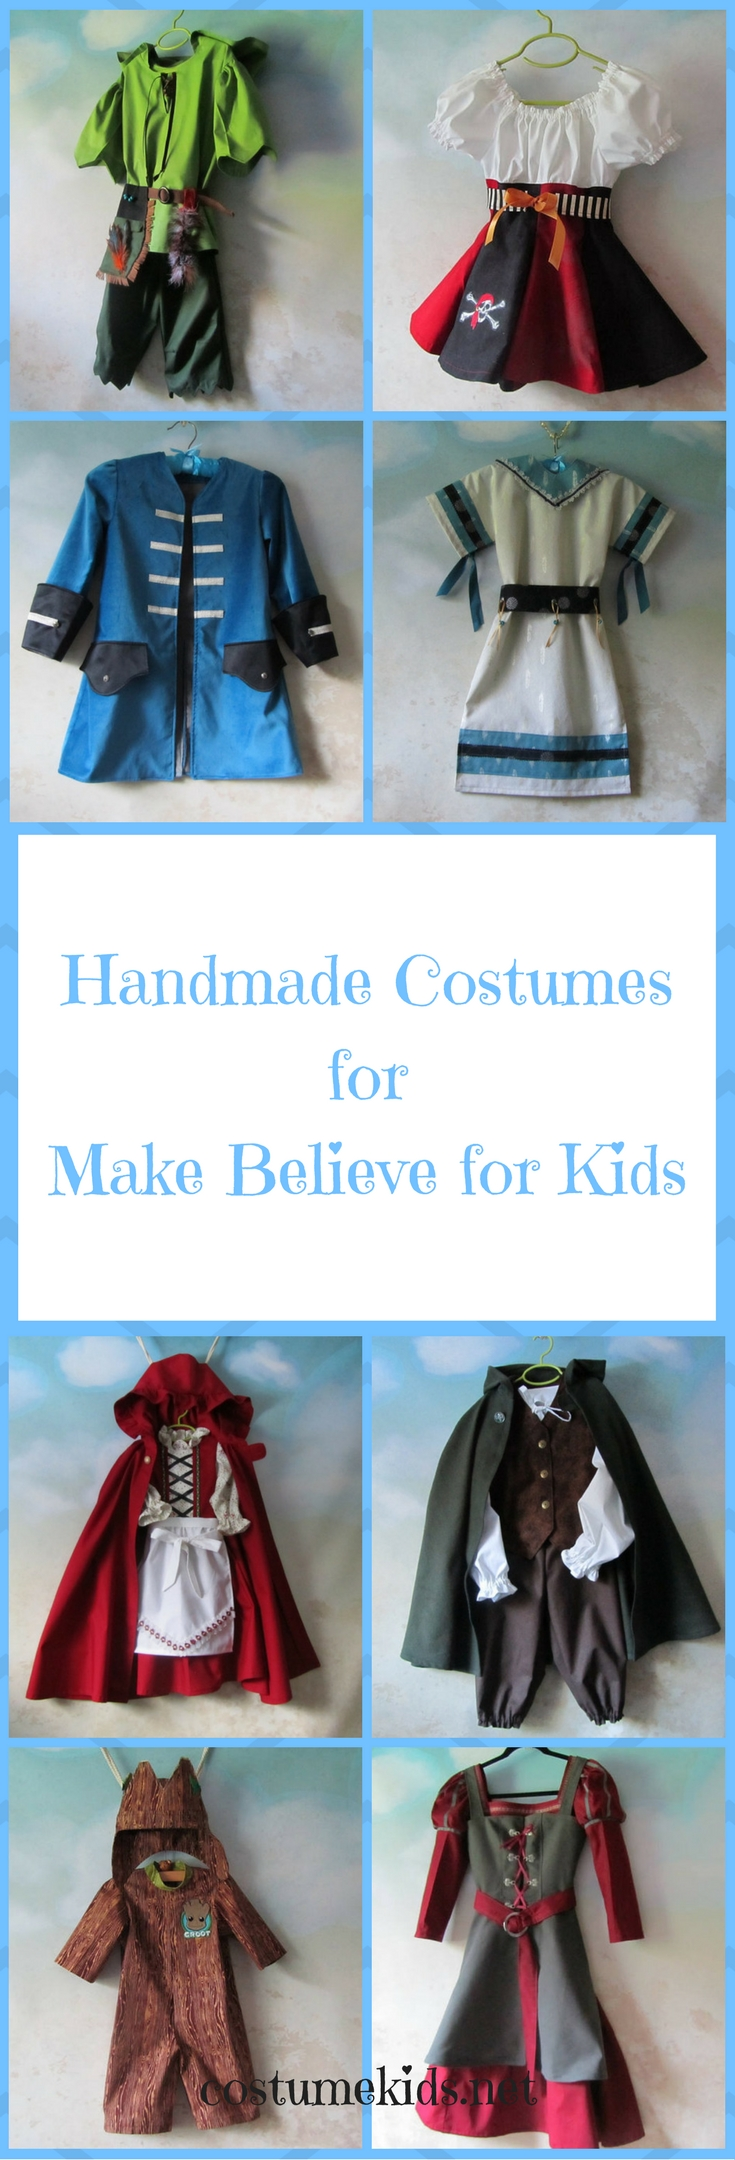 Handmade Costumes for Make Believe for Kids P